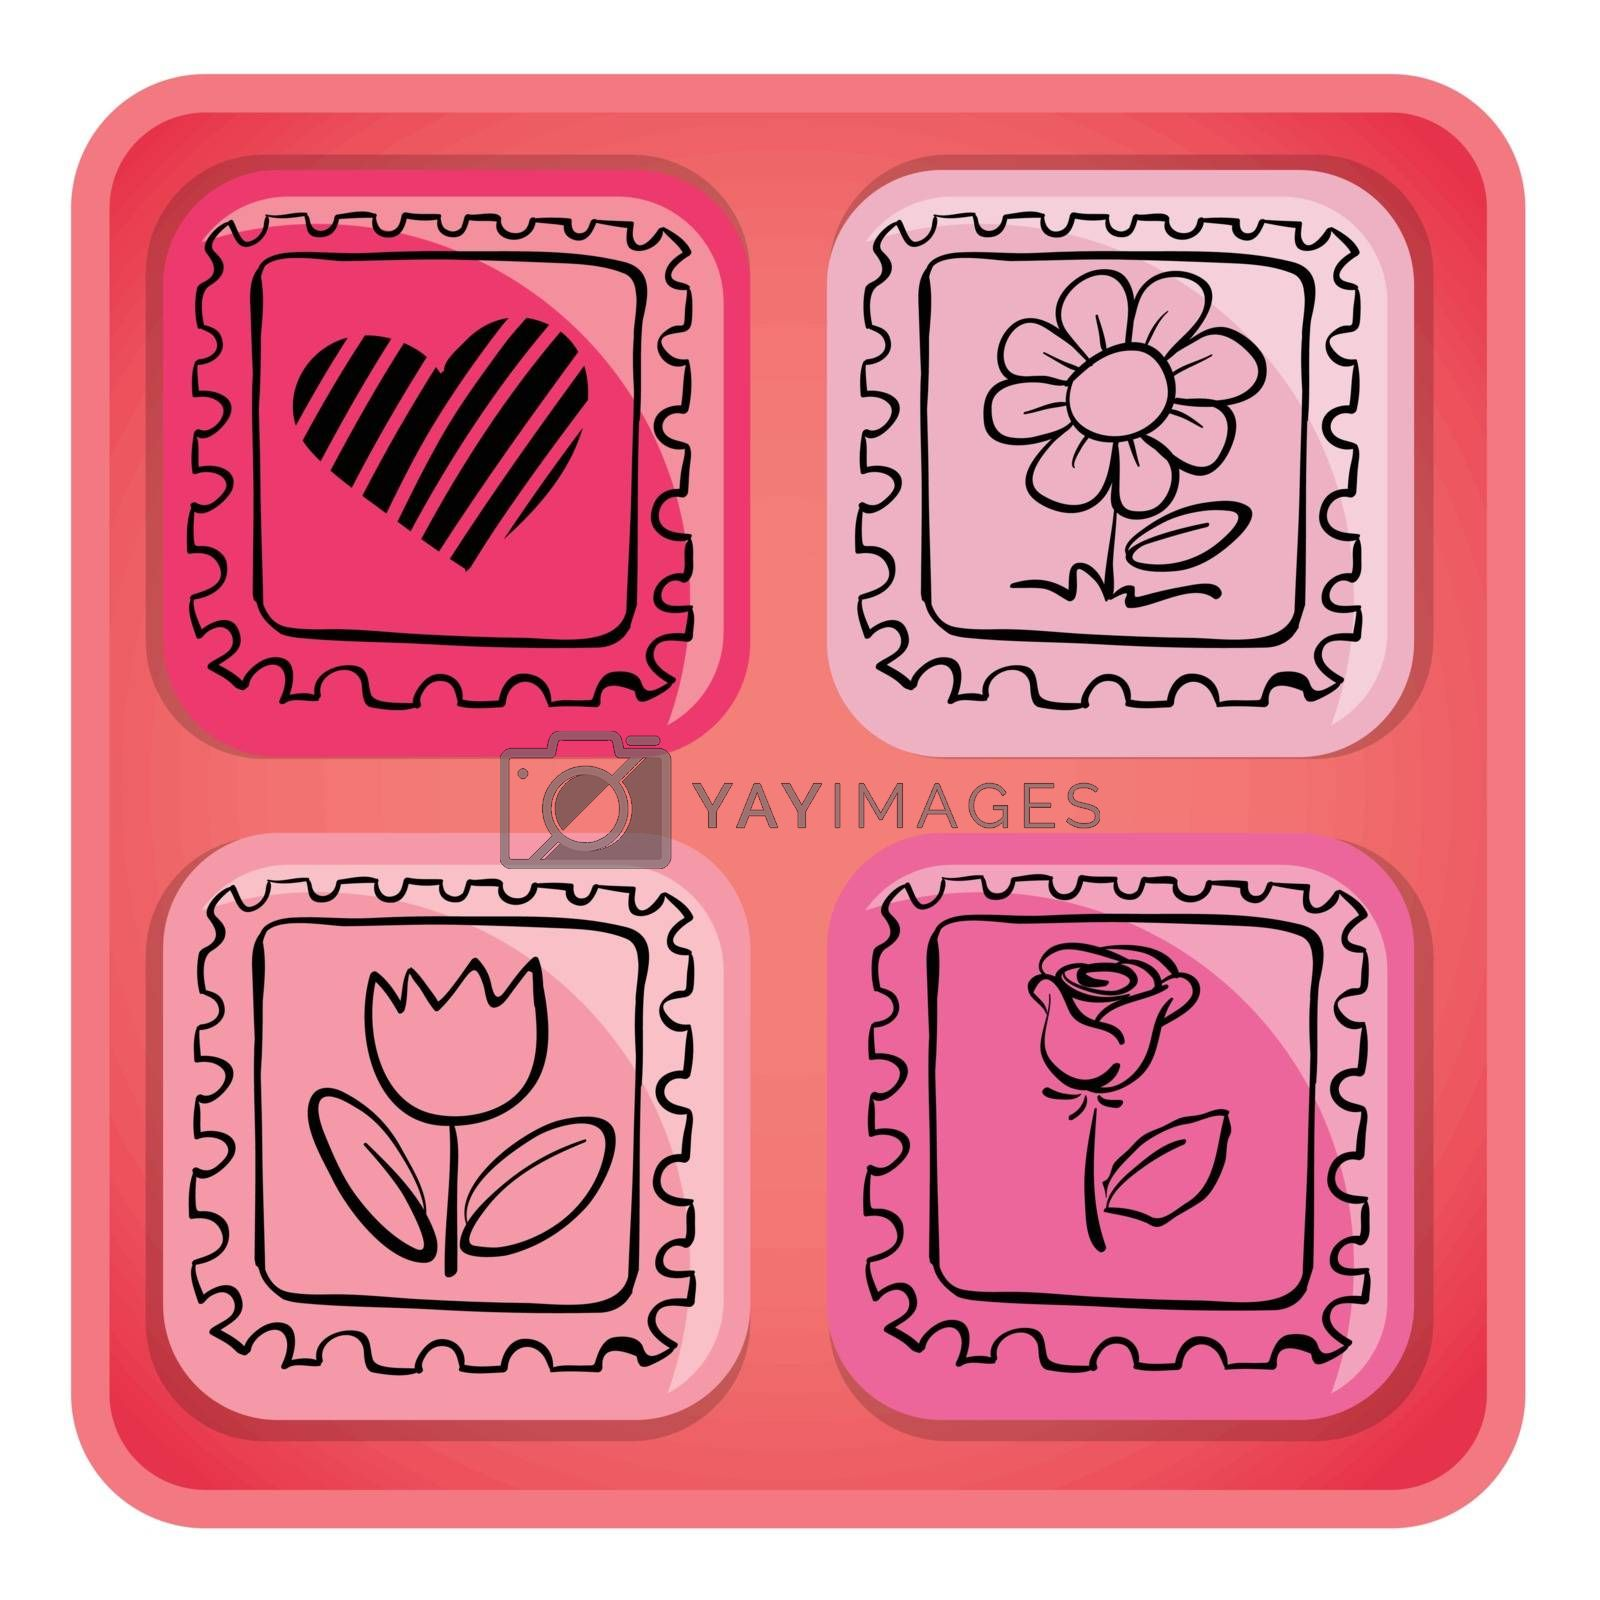 Illustration of a pink cube with images on a white background